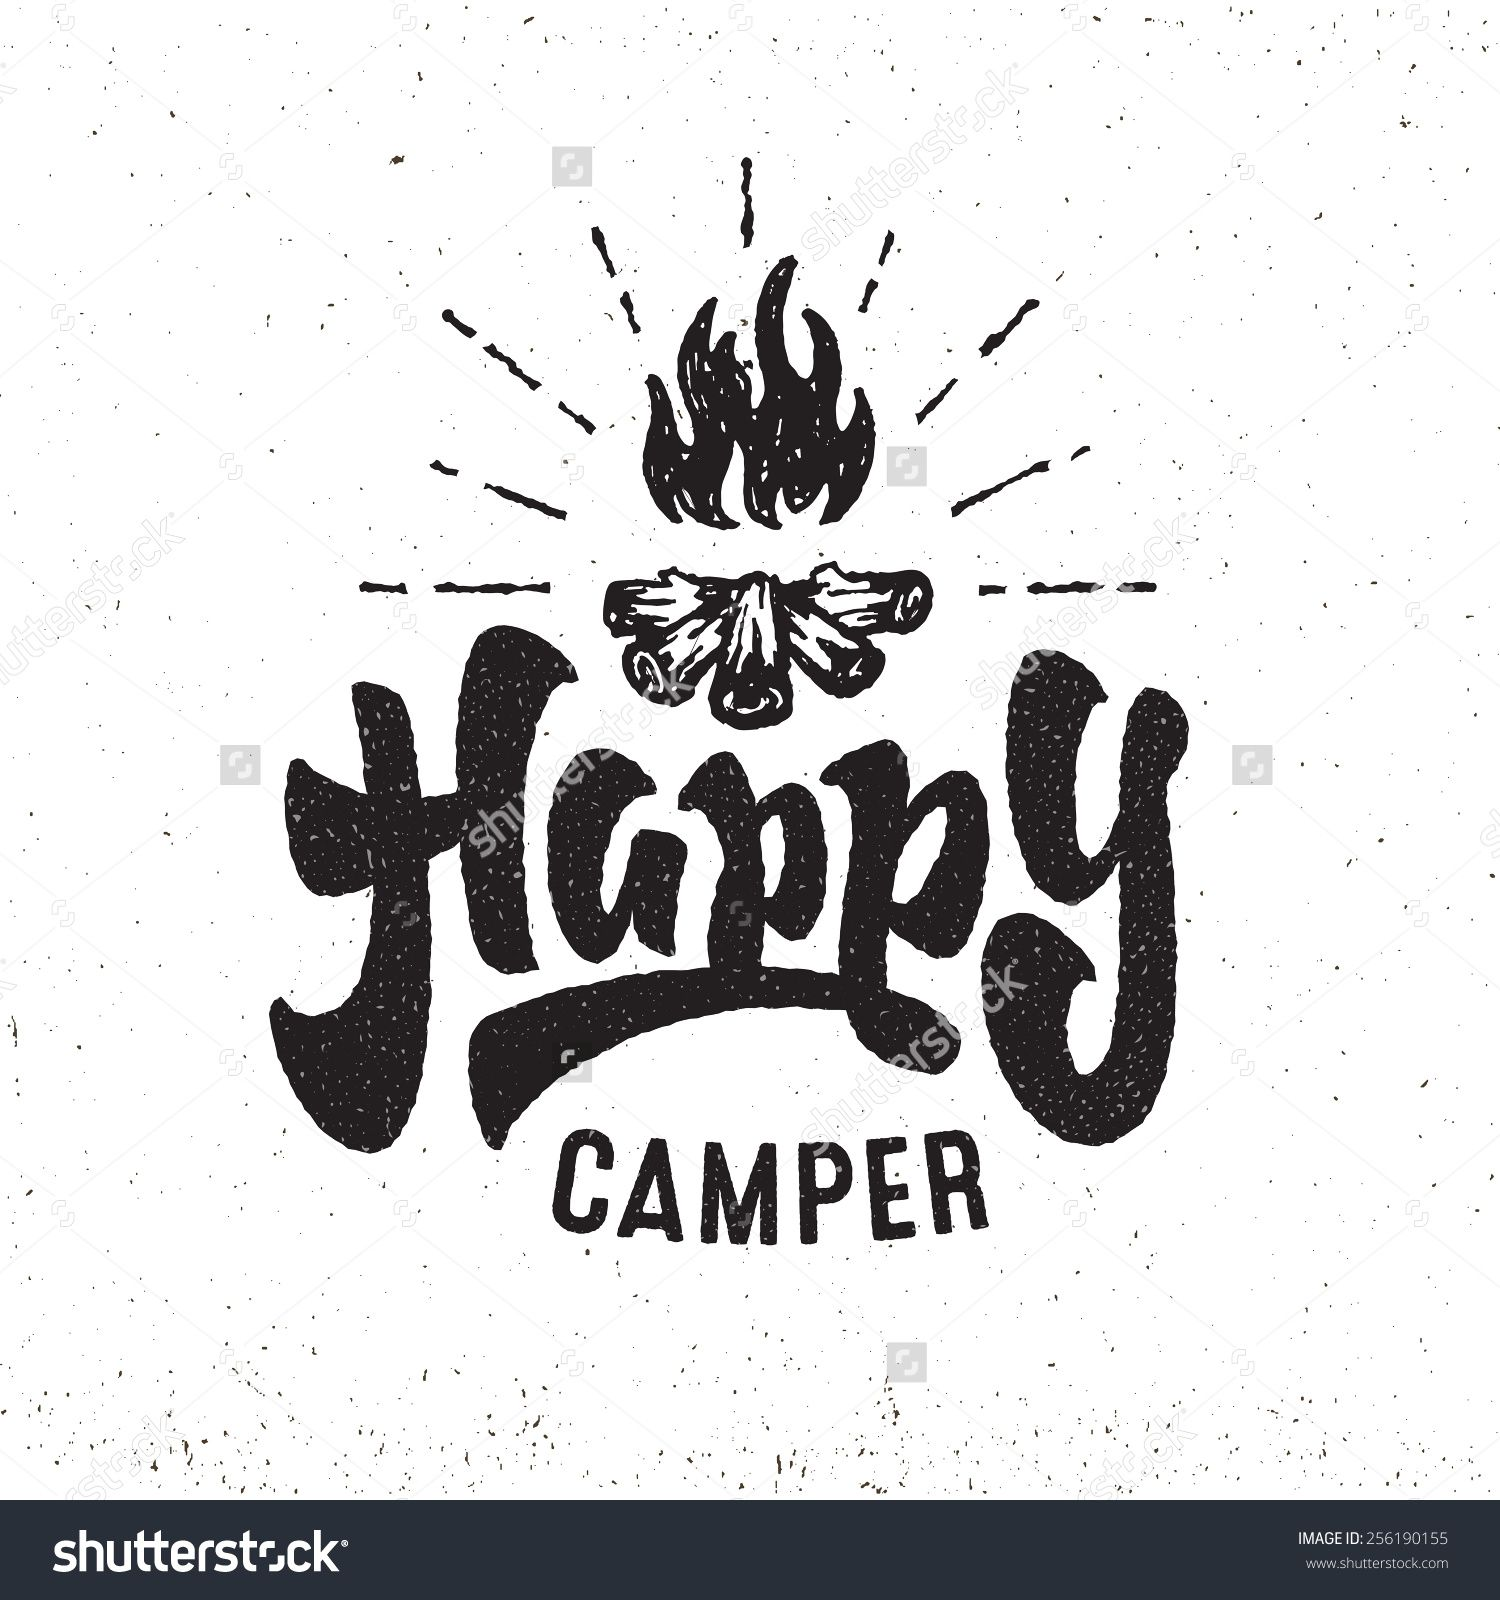 Bonfire stock vectors clip. Camper clipart vector